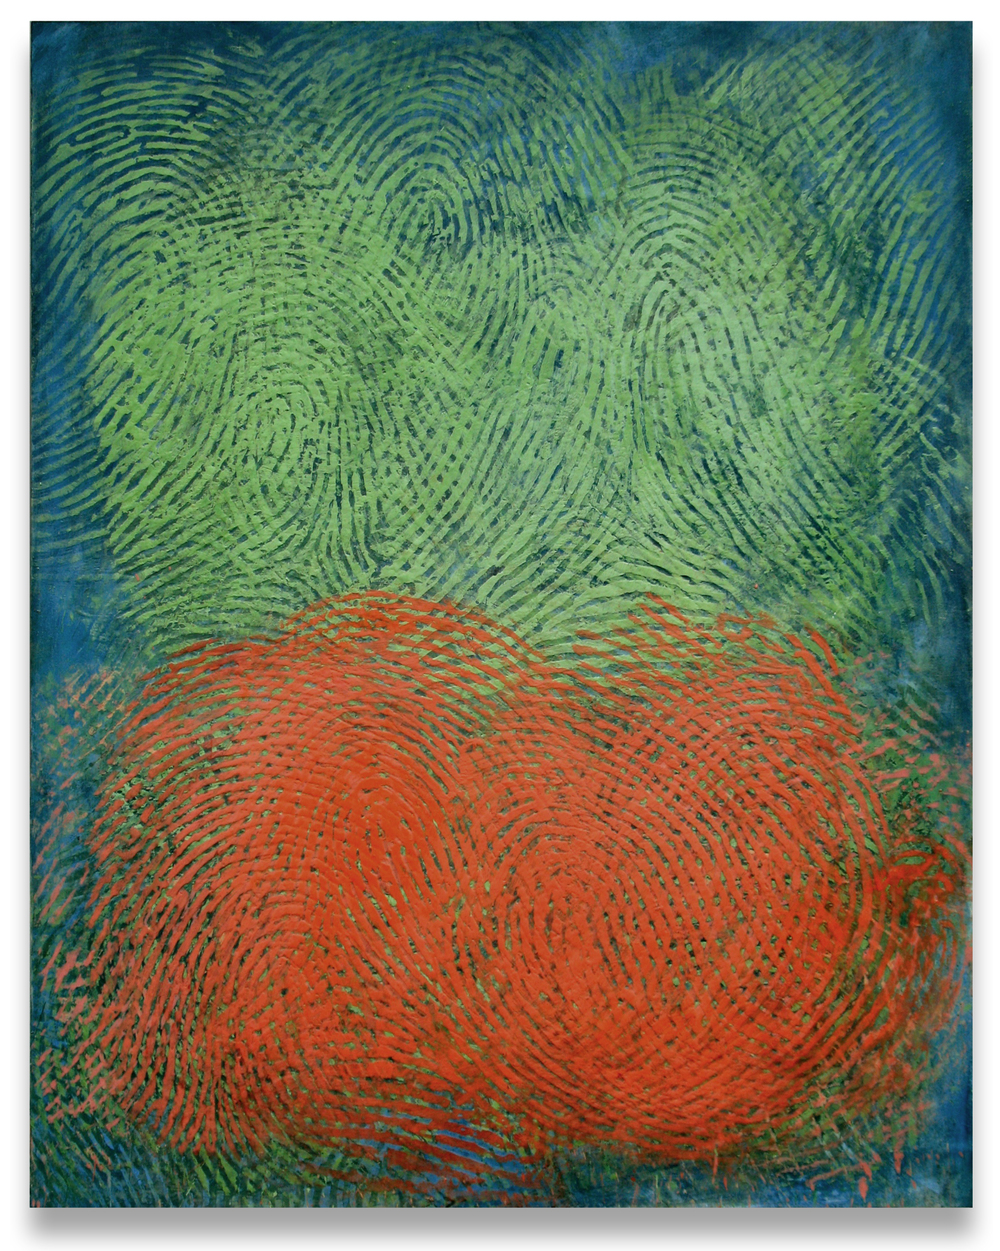 Soma in Green and Orange, 2011